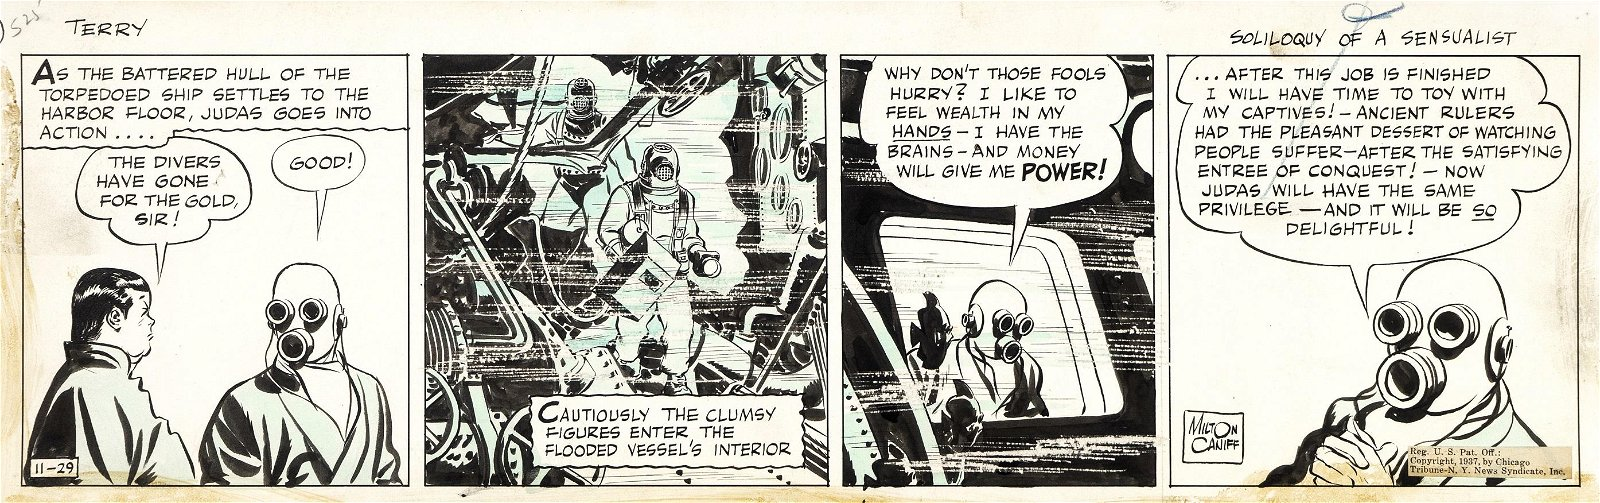 """Caniff Milton - """"Terry and the Pirates - Soliloquy"""